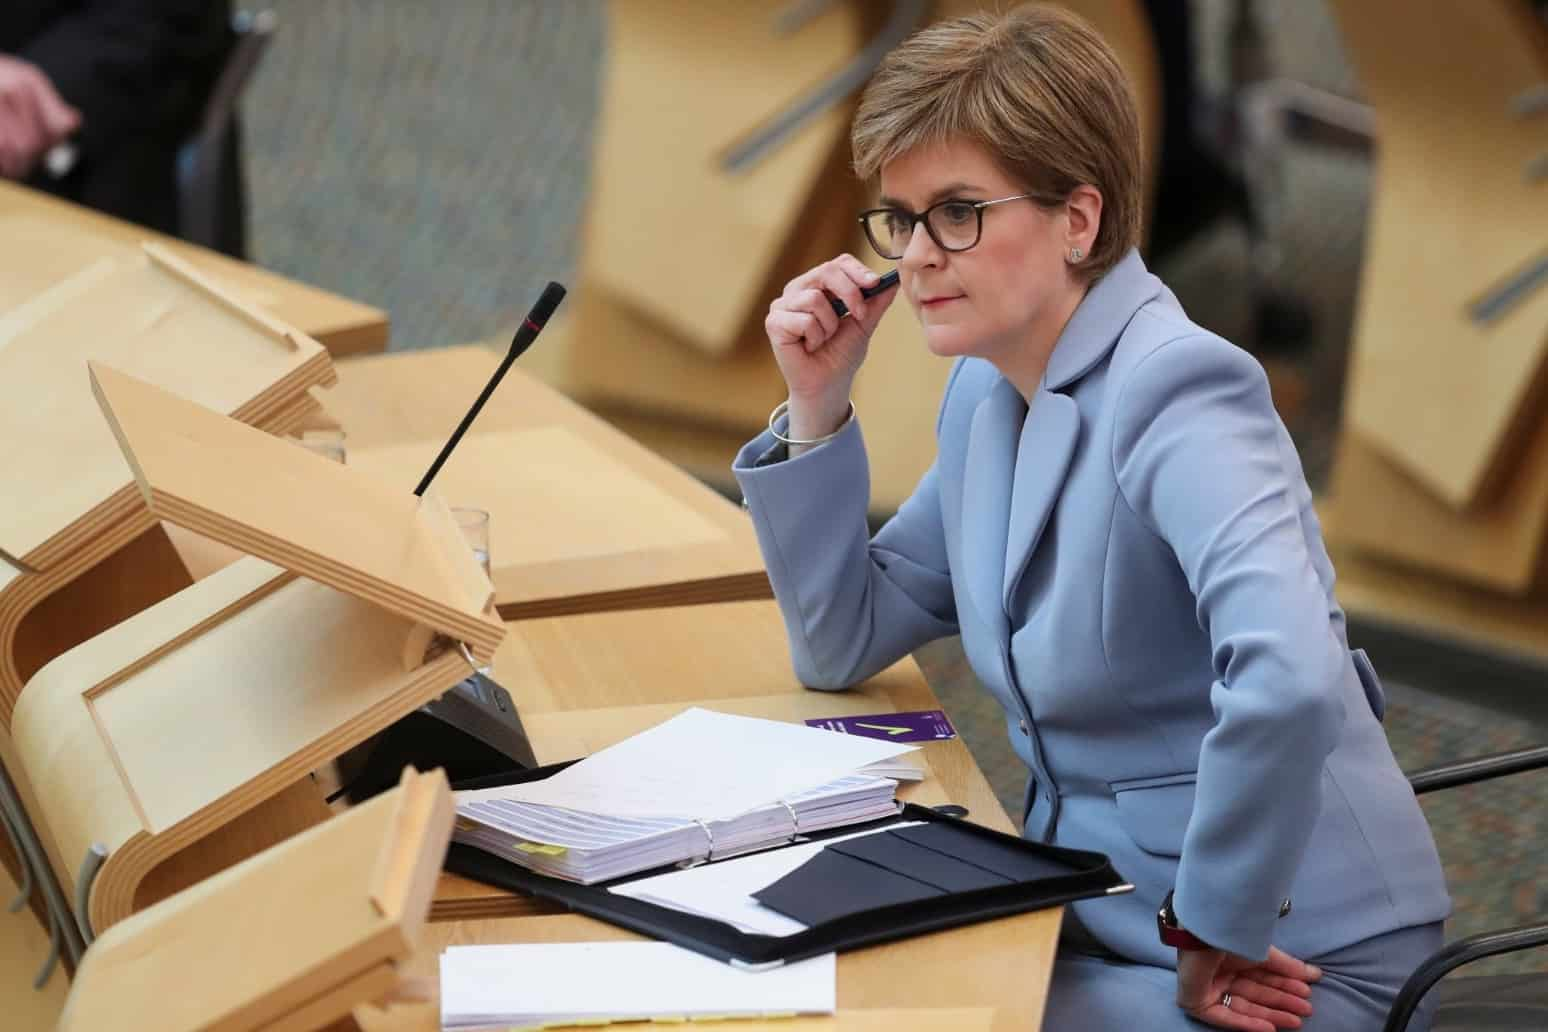 Lockdown to ease across most of Scotland but some areas retain tougher measures